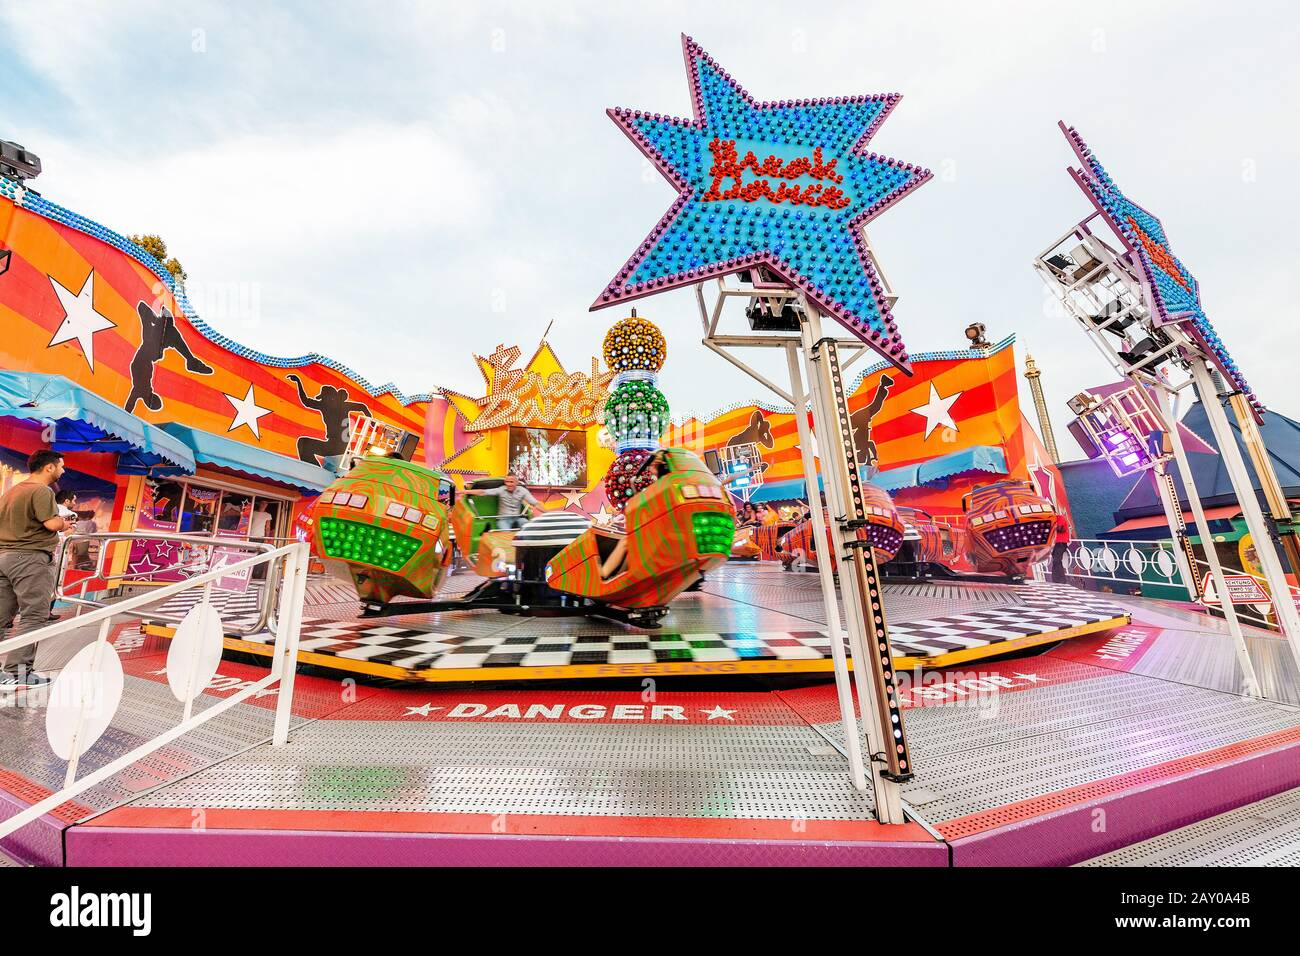 20 July 2019, Vienna, Austria: Fun adults and children attractions in the iconic Prater Park in Vienna Stock Photo